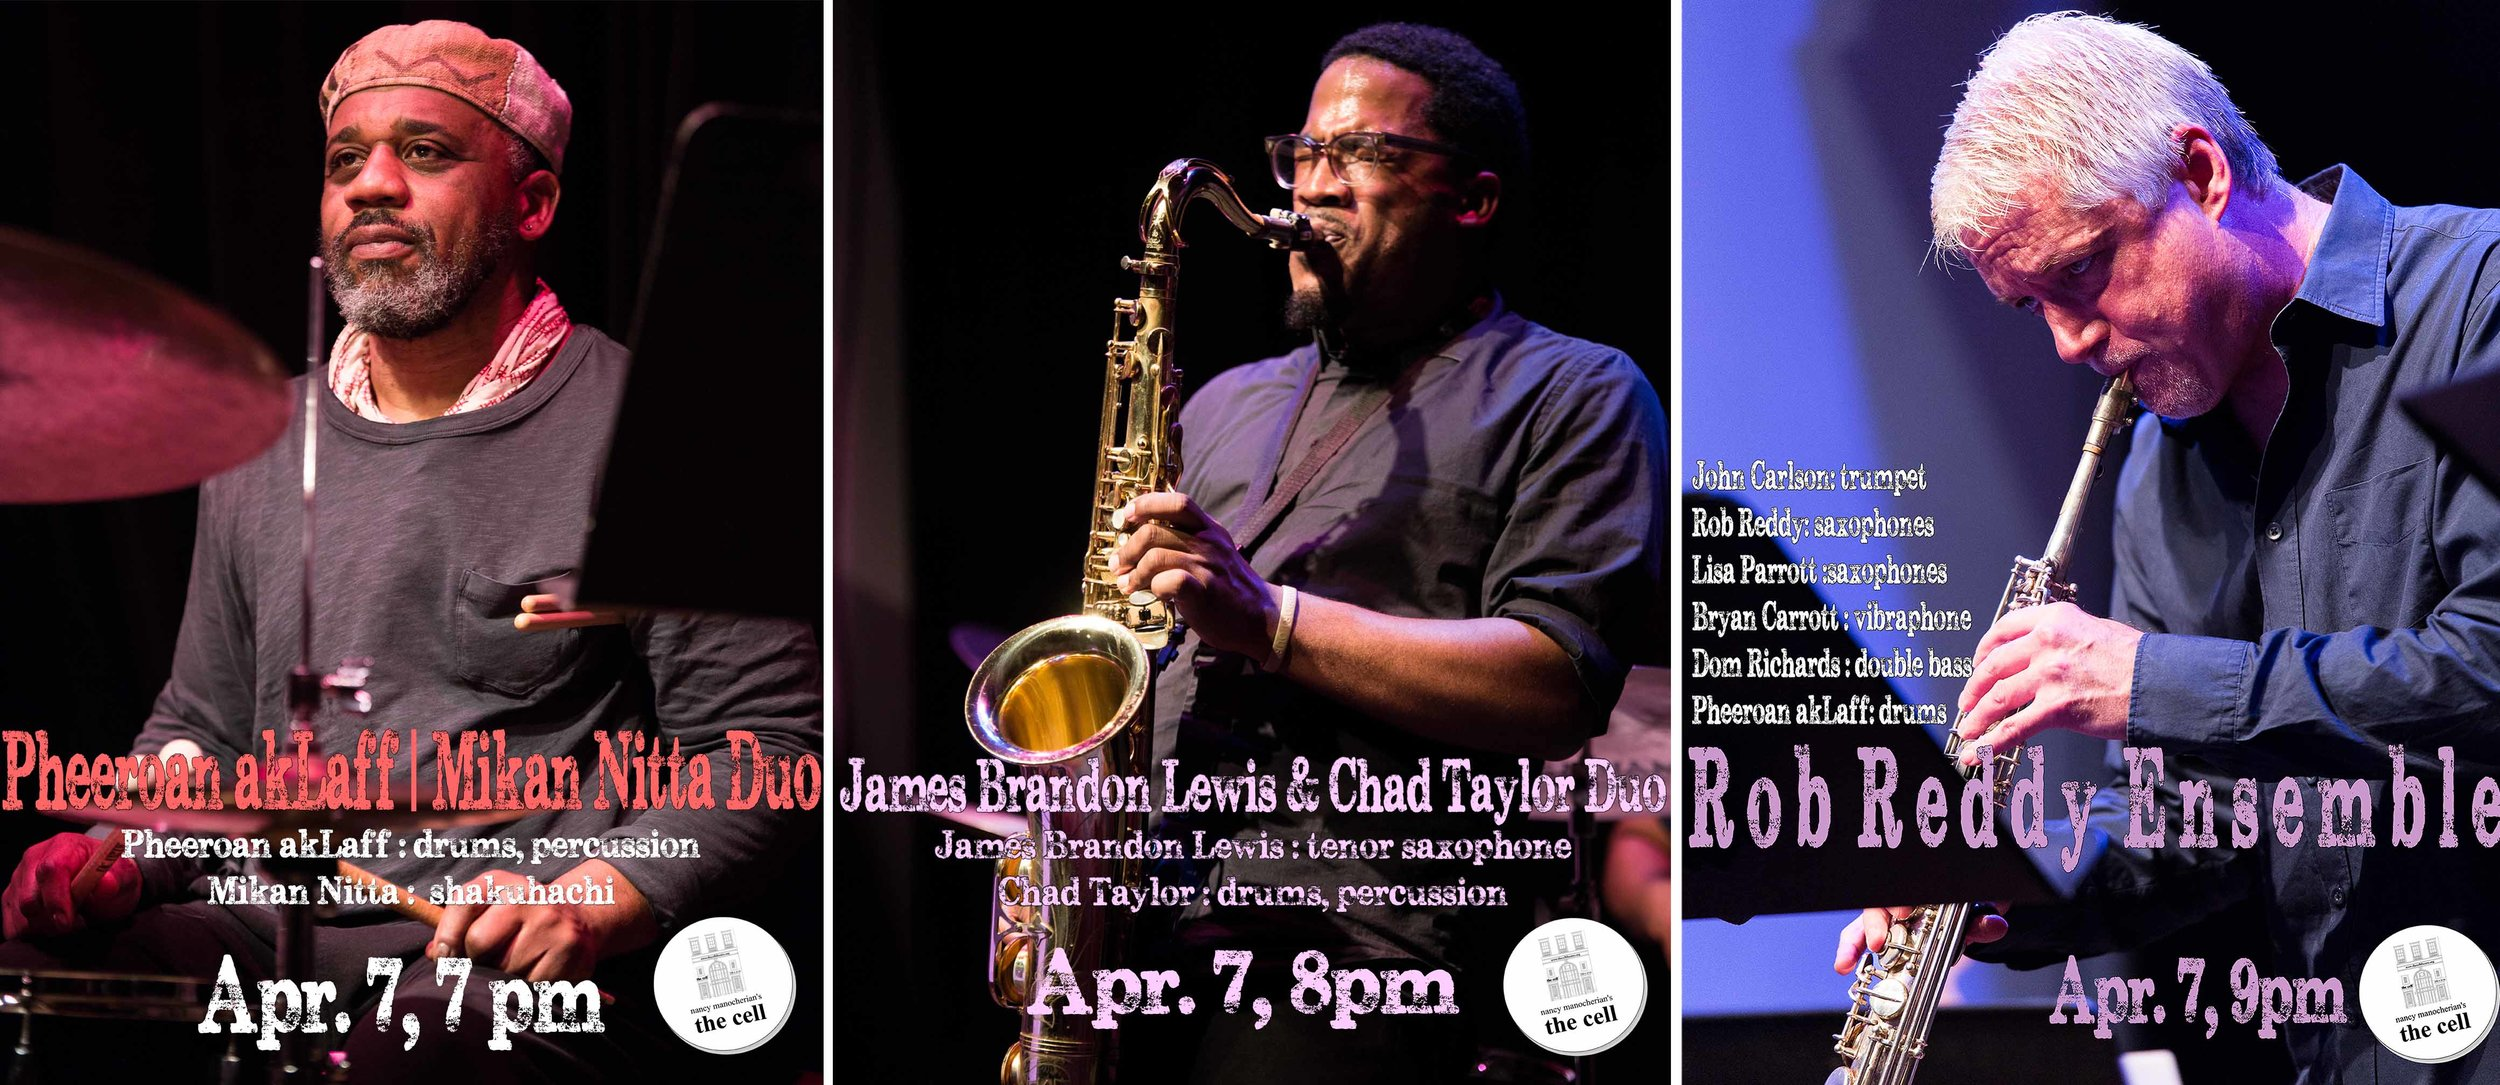 Jazz at the cell citizen arts April 7 web.jpg